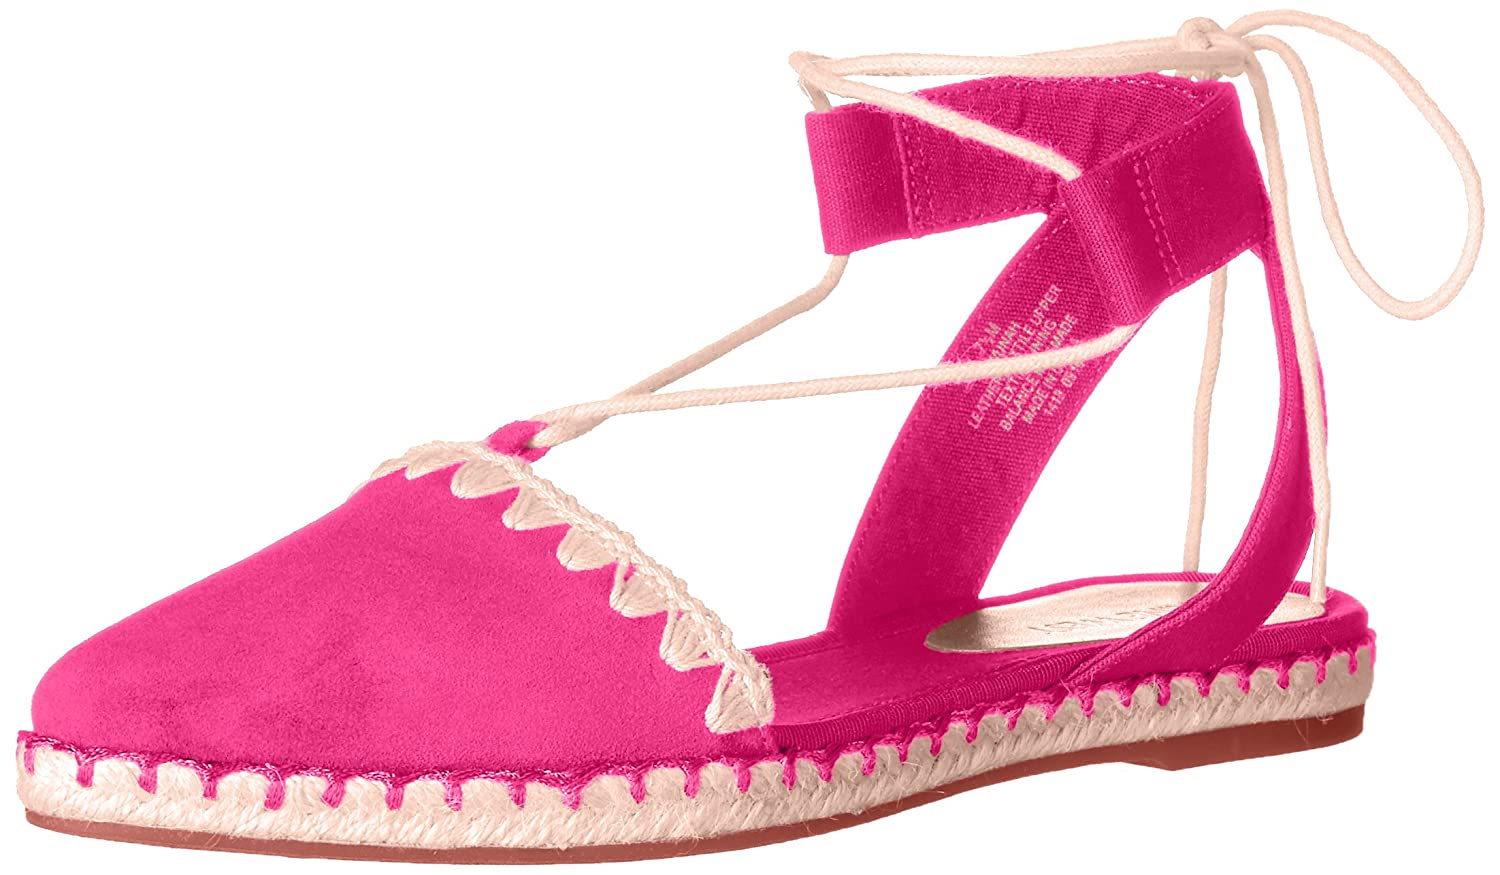 Nine West Women's Unah Suede Pointed Toe Flat B01LX6E1EF 5.5 B(M) US|Pink